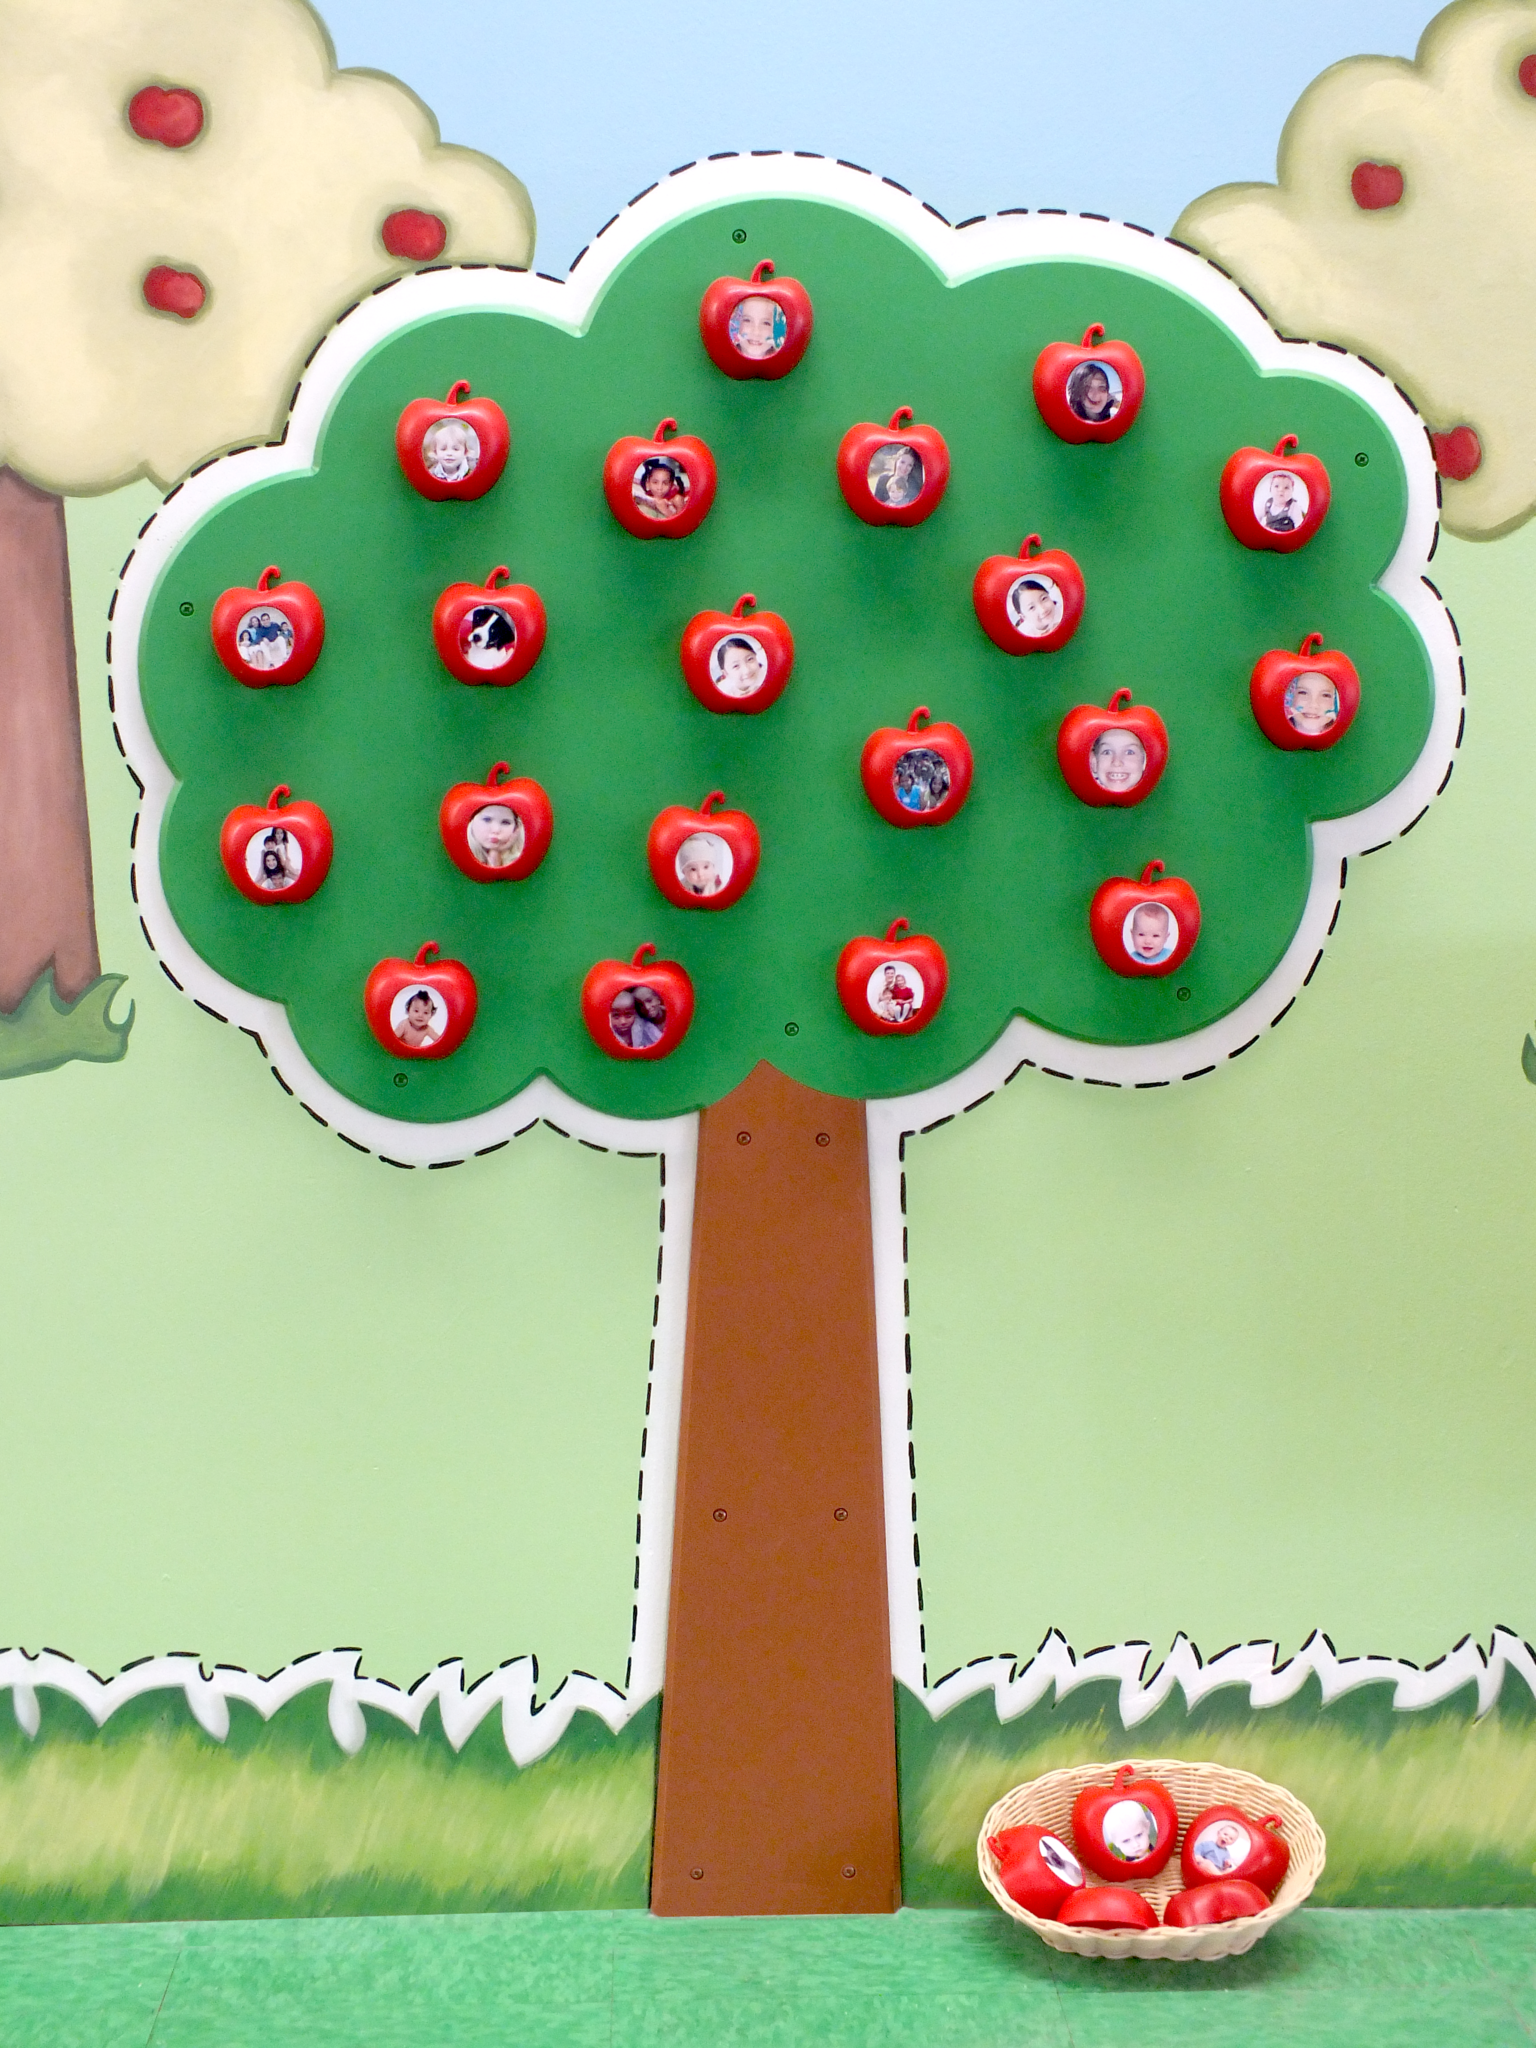 Children's Museum Factory The Magnetic Apple Tree of 20 Apples